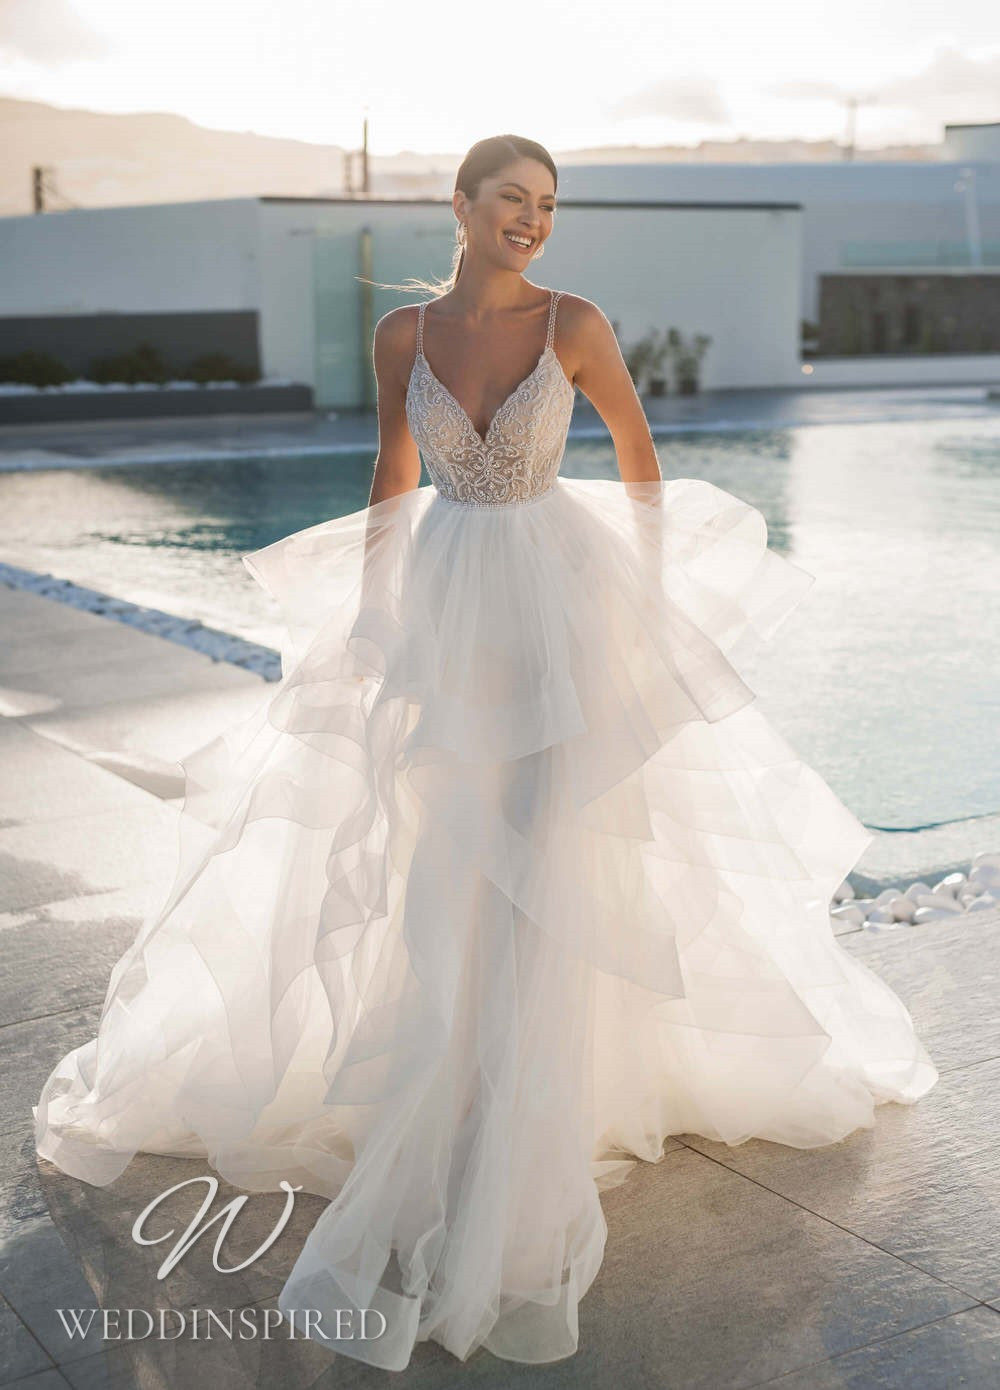 A Blunny 2021 lace and tulle A-line wedding dress with a ruffle skirt